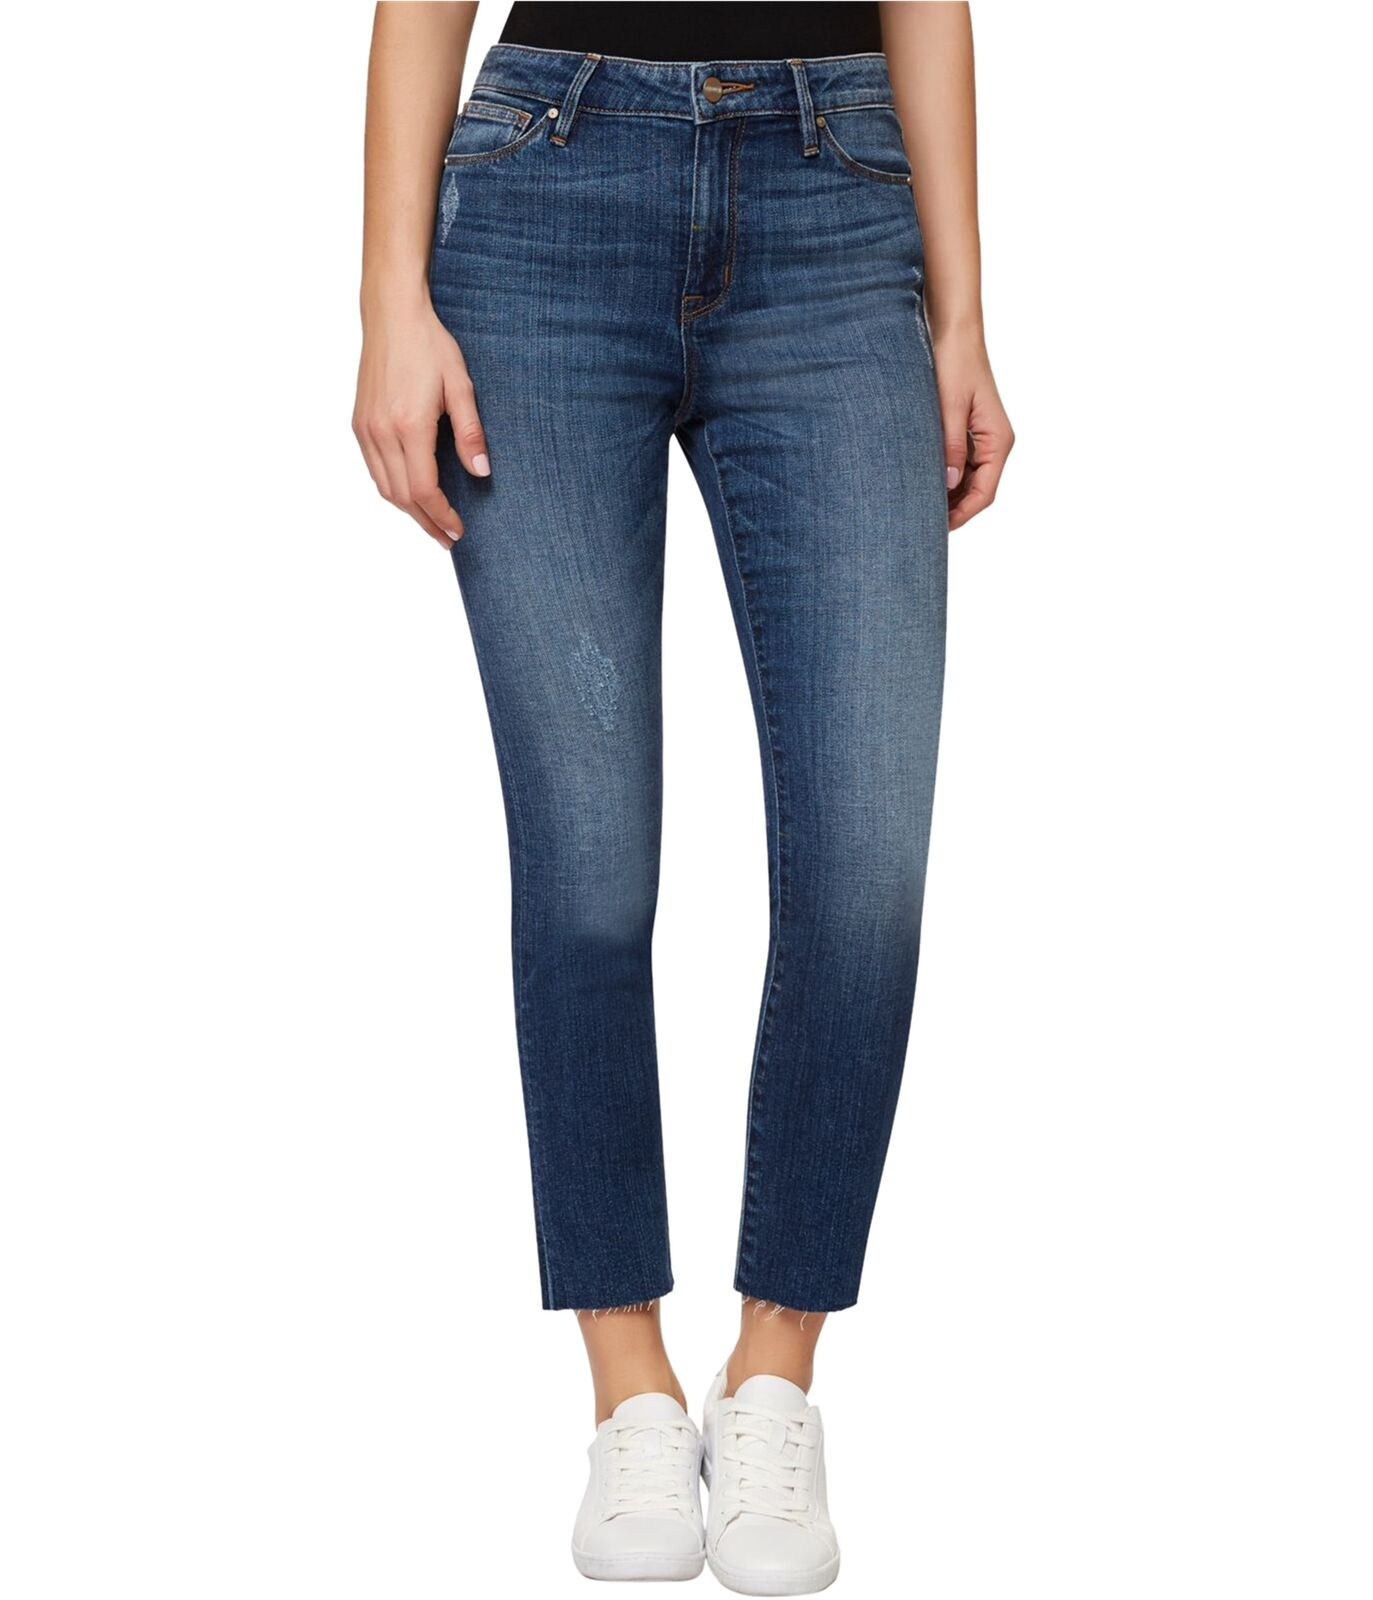 Sanctuary Clothing Womens Ankle-Length Straight Leg Jeans amberwash 24x26